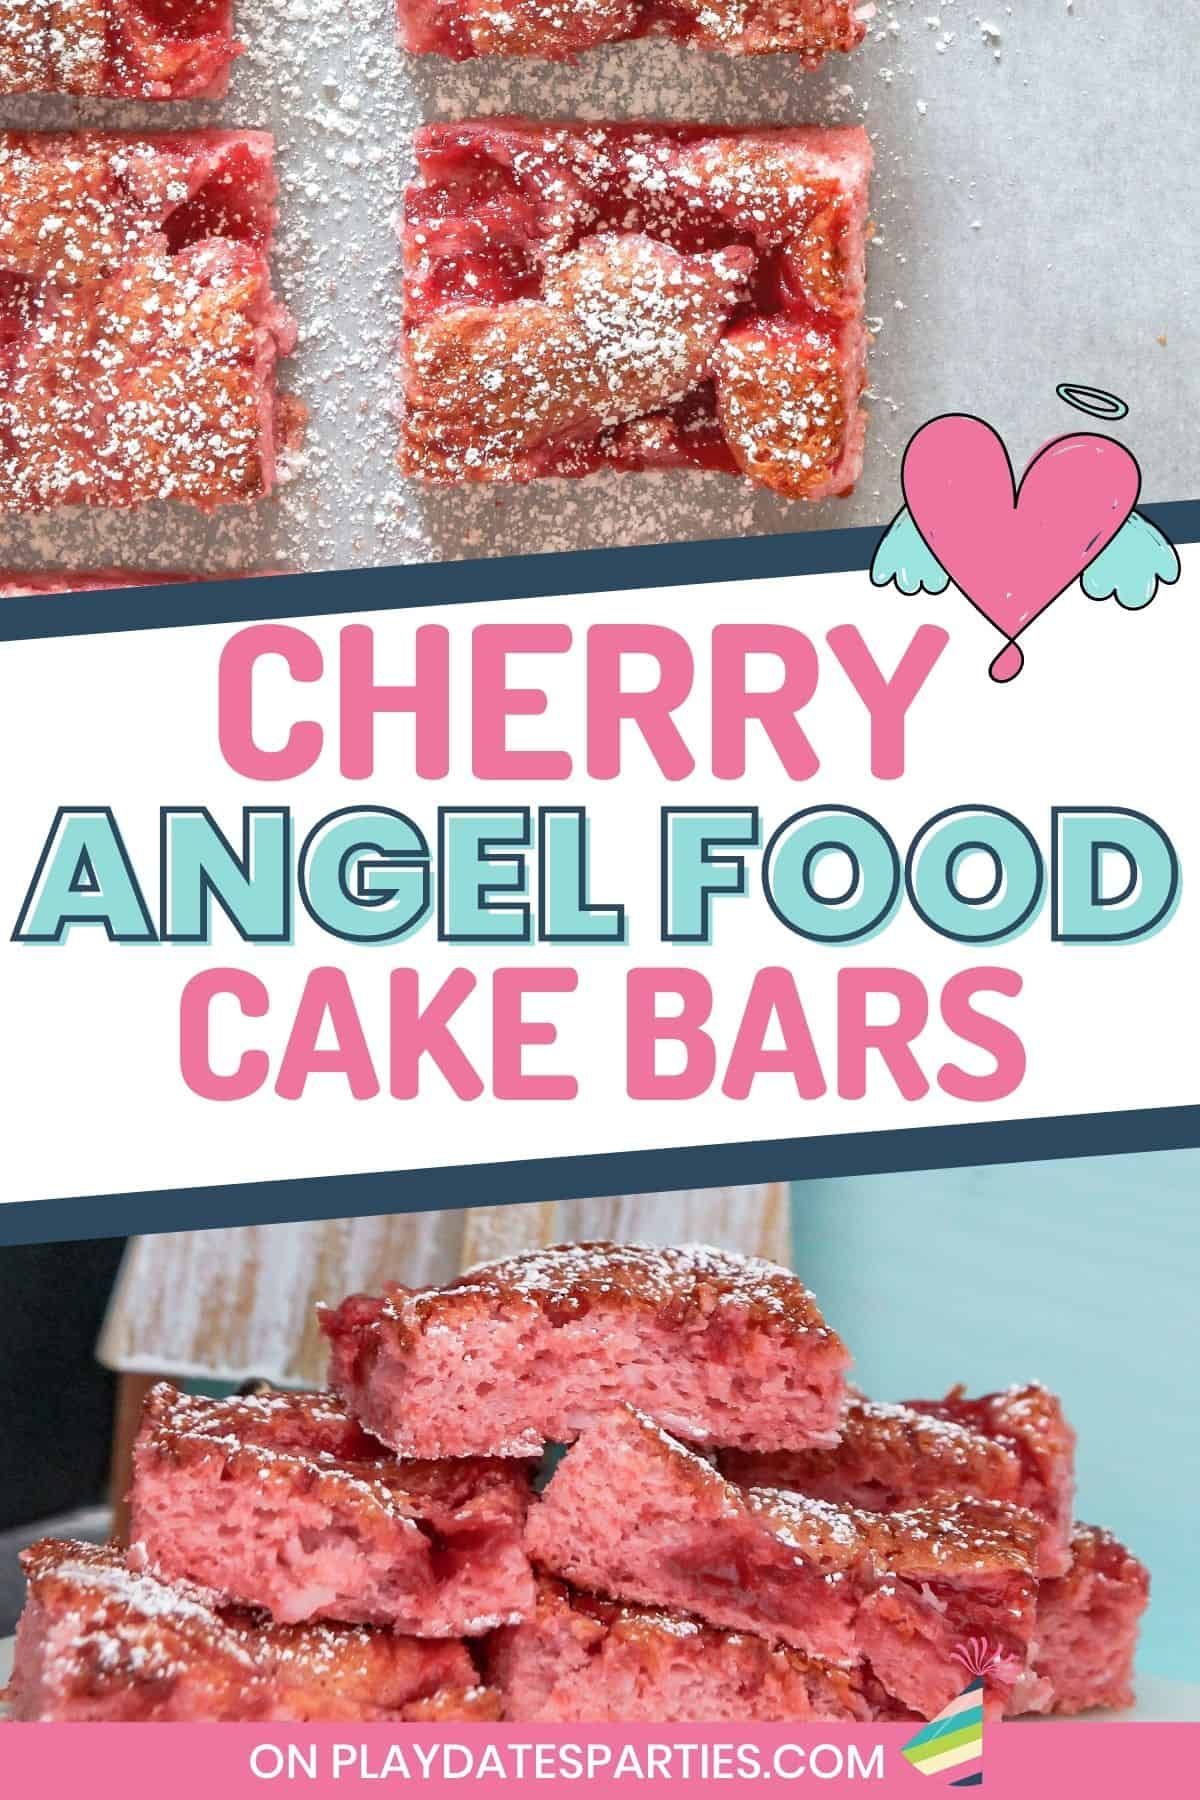 Collage of finished bars with text overlay: Cherry Angel Food Cake Bars. The top image is an overhead shot on parchment paper. The bottom image shows a pile of the bars from the side with their spongy texture